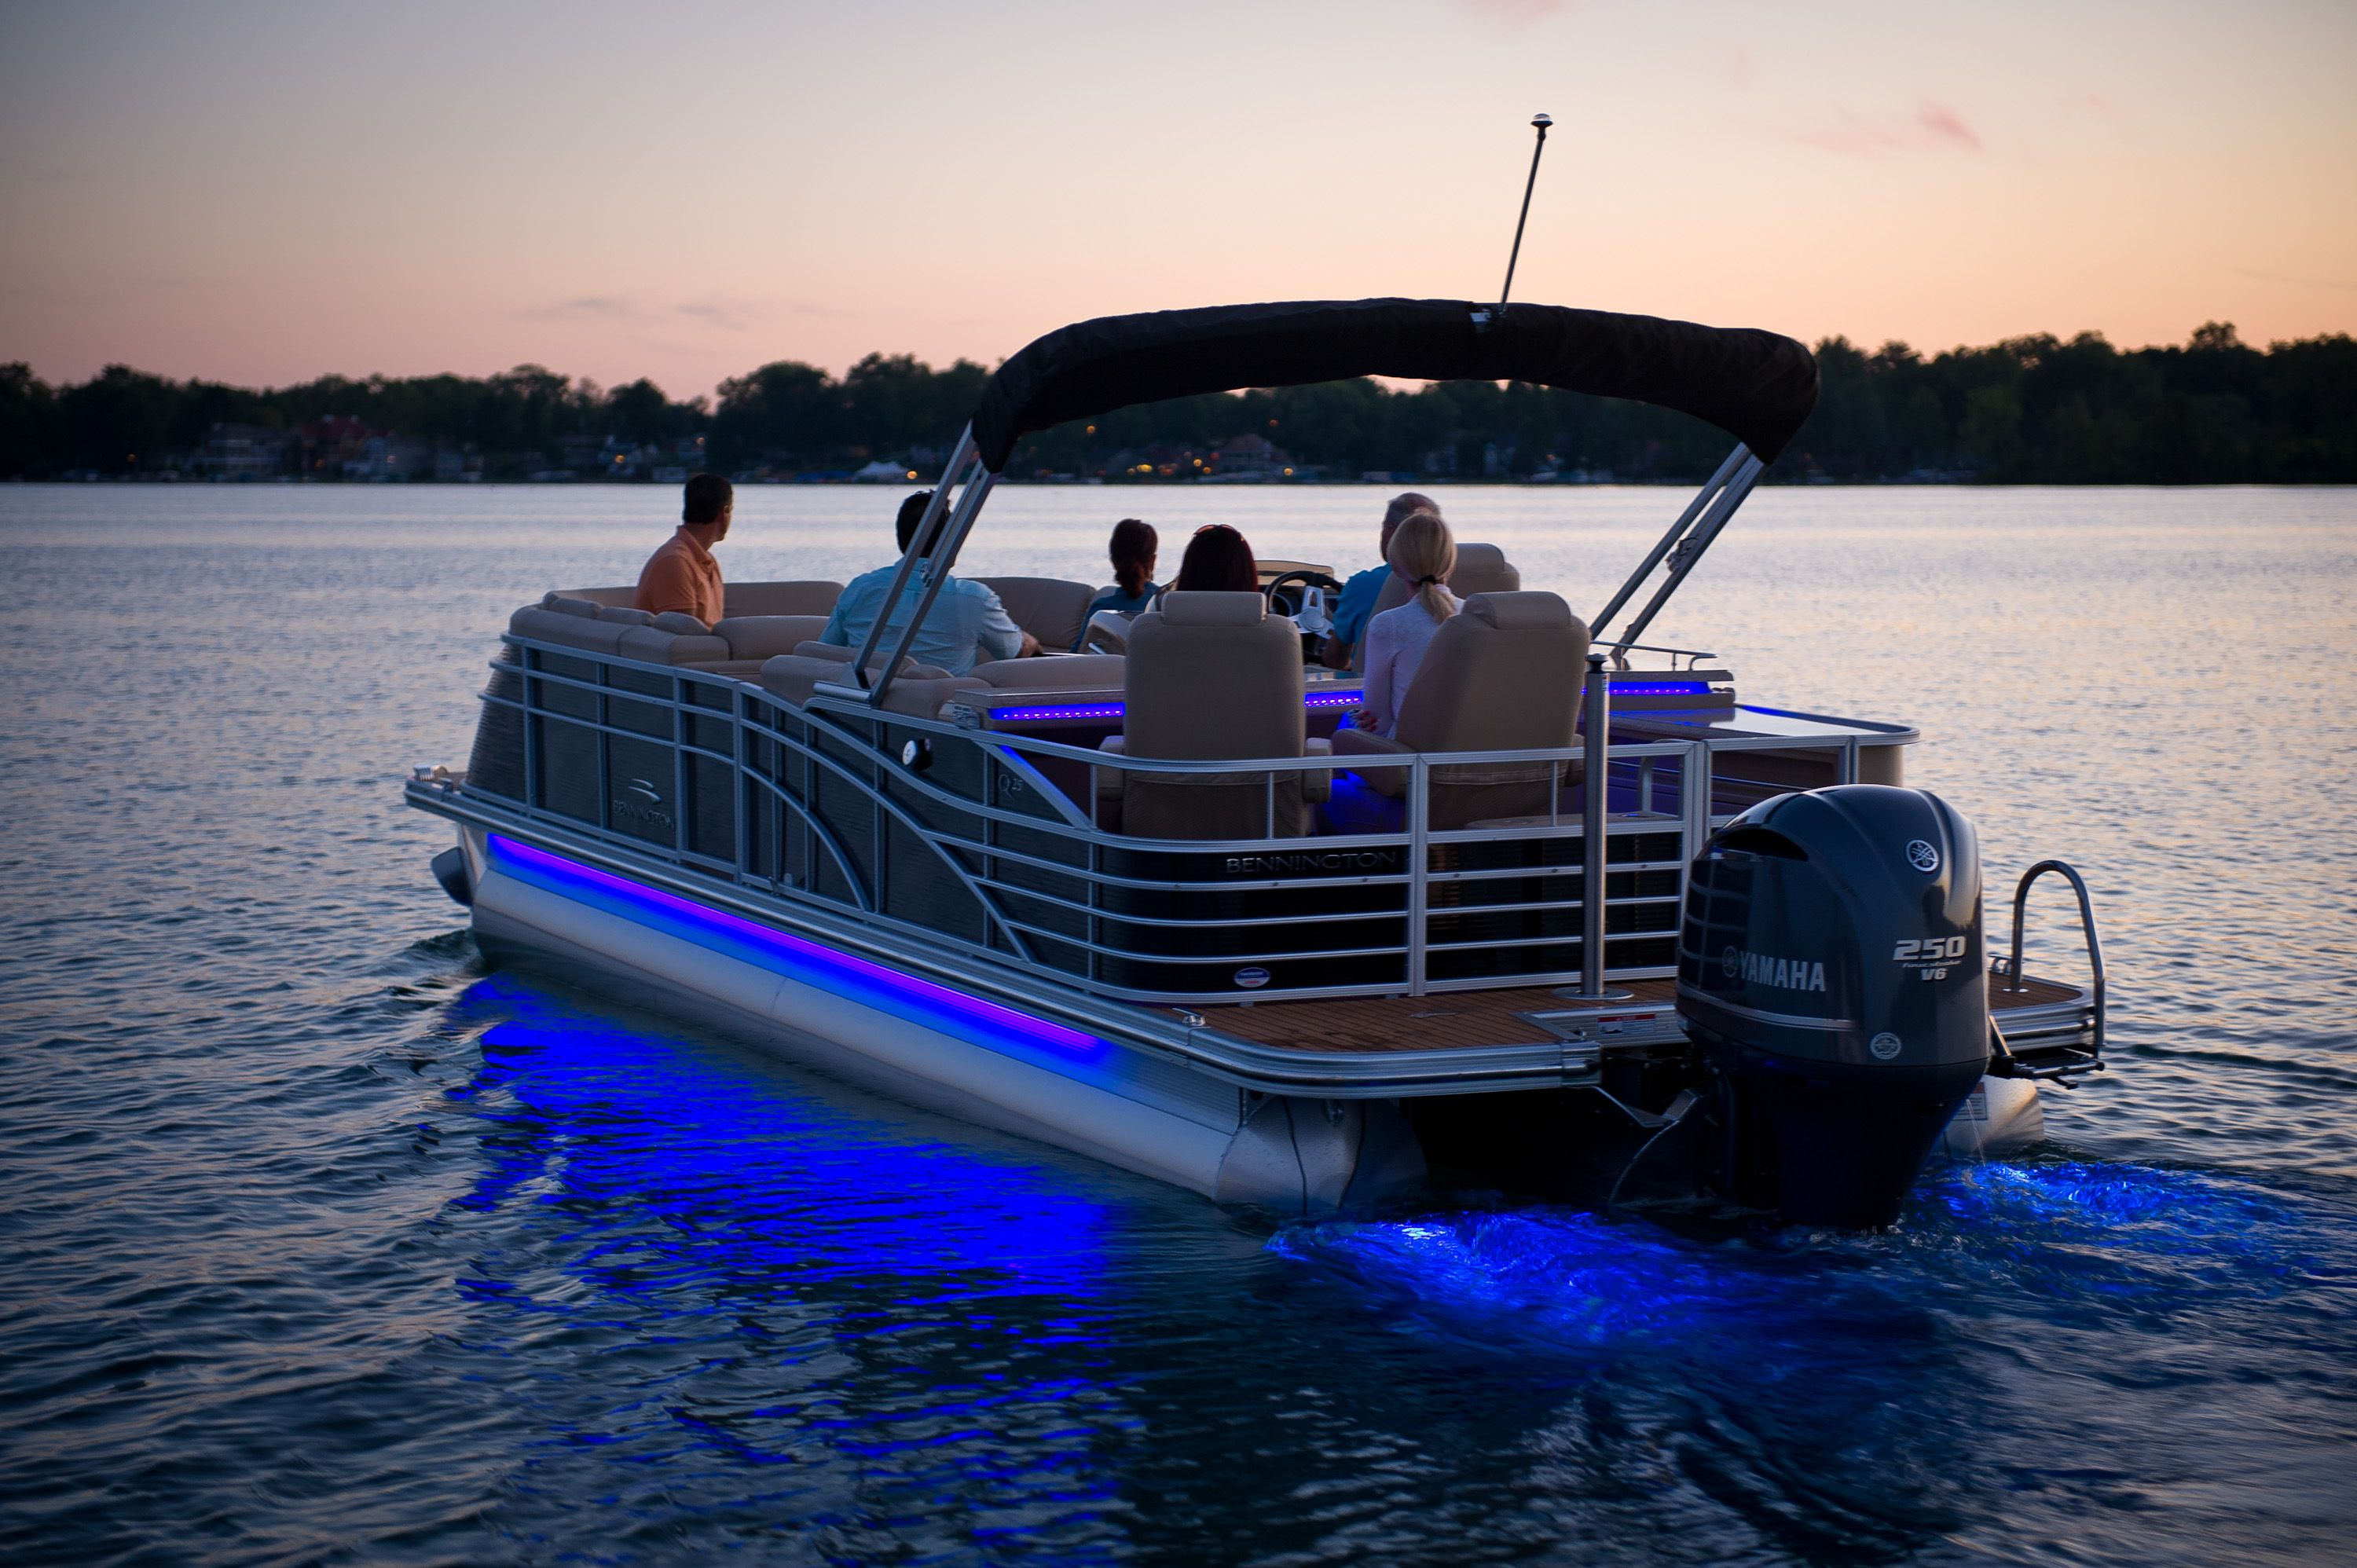 2013 Bennington 2550 QBR w/ underwater and side LED lighting. Party on deck lighting ideas, pontoon furniture, houseboat lighting ideas, custom lighting ideas, pontoon fishing lights, trailer lighting ideas, dock lighting ideas, kayak lighting ideas, pier lighting ideas, light parade ideas, pontoon an inboard to outboard conversion, lighted christmas parade float ideas, malibu lighting ideas, boat lighting ideas,